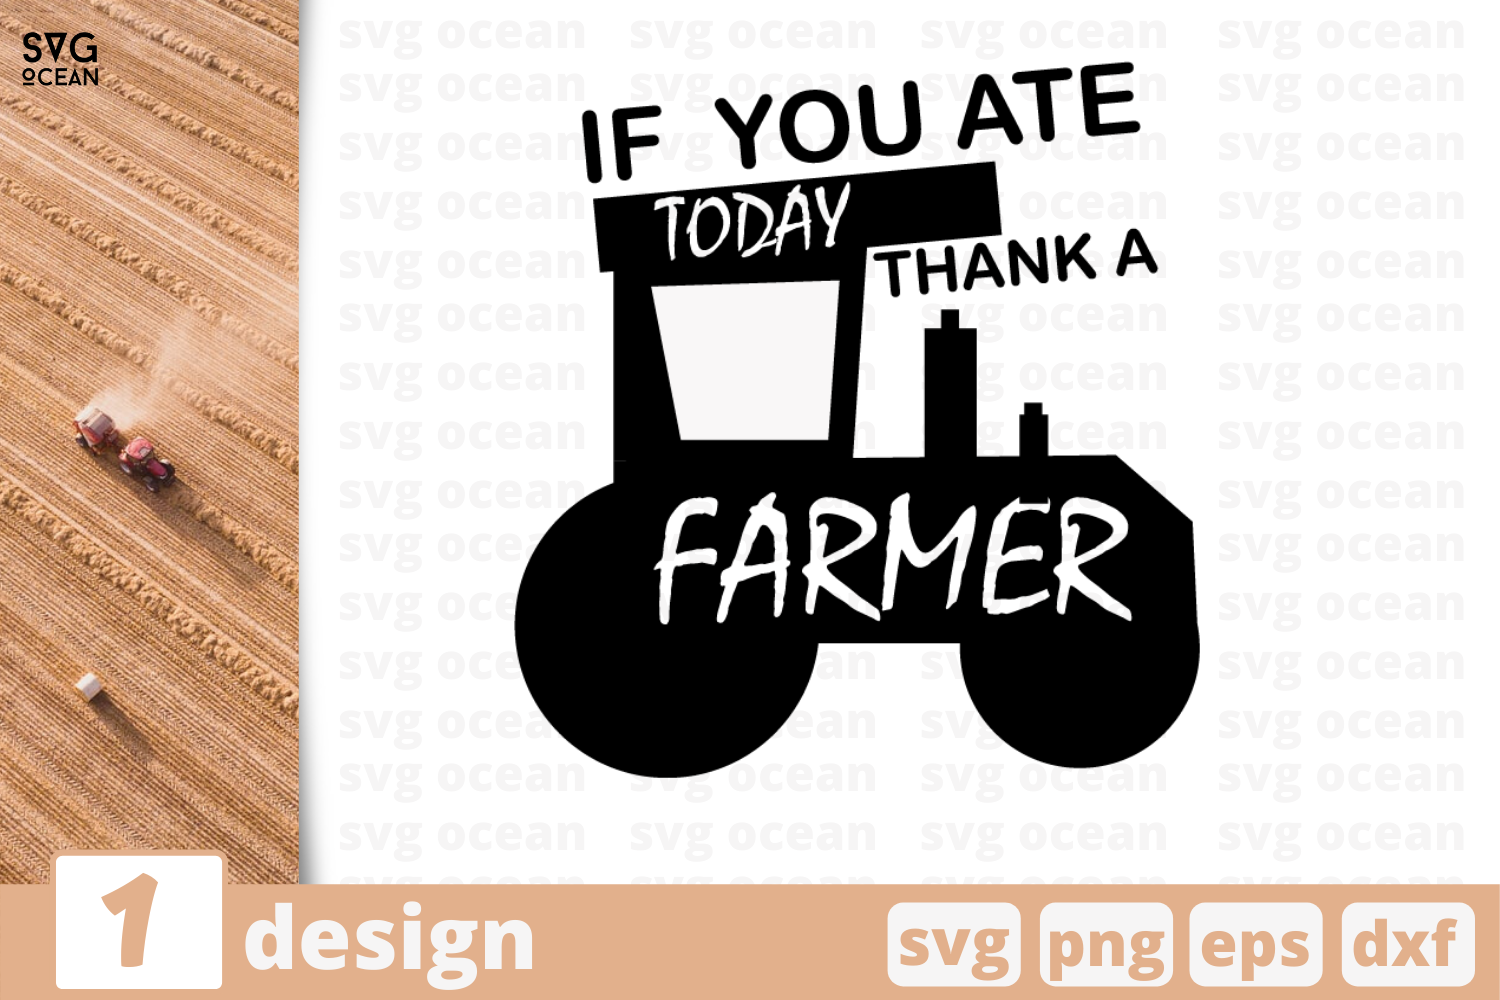 Download Free Farmer Quote Graphic By Svgocean Creative Fabrica for Cricut Explore, Silhouette and other cutting machines.